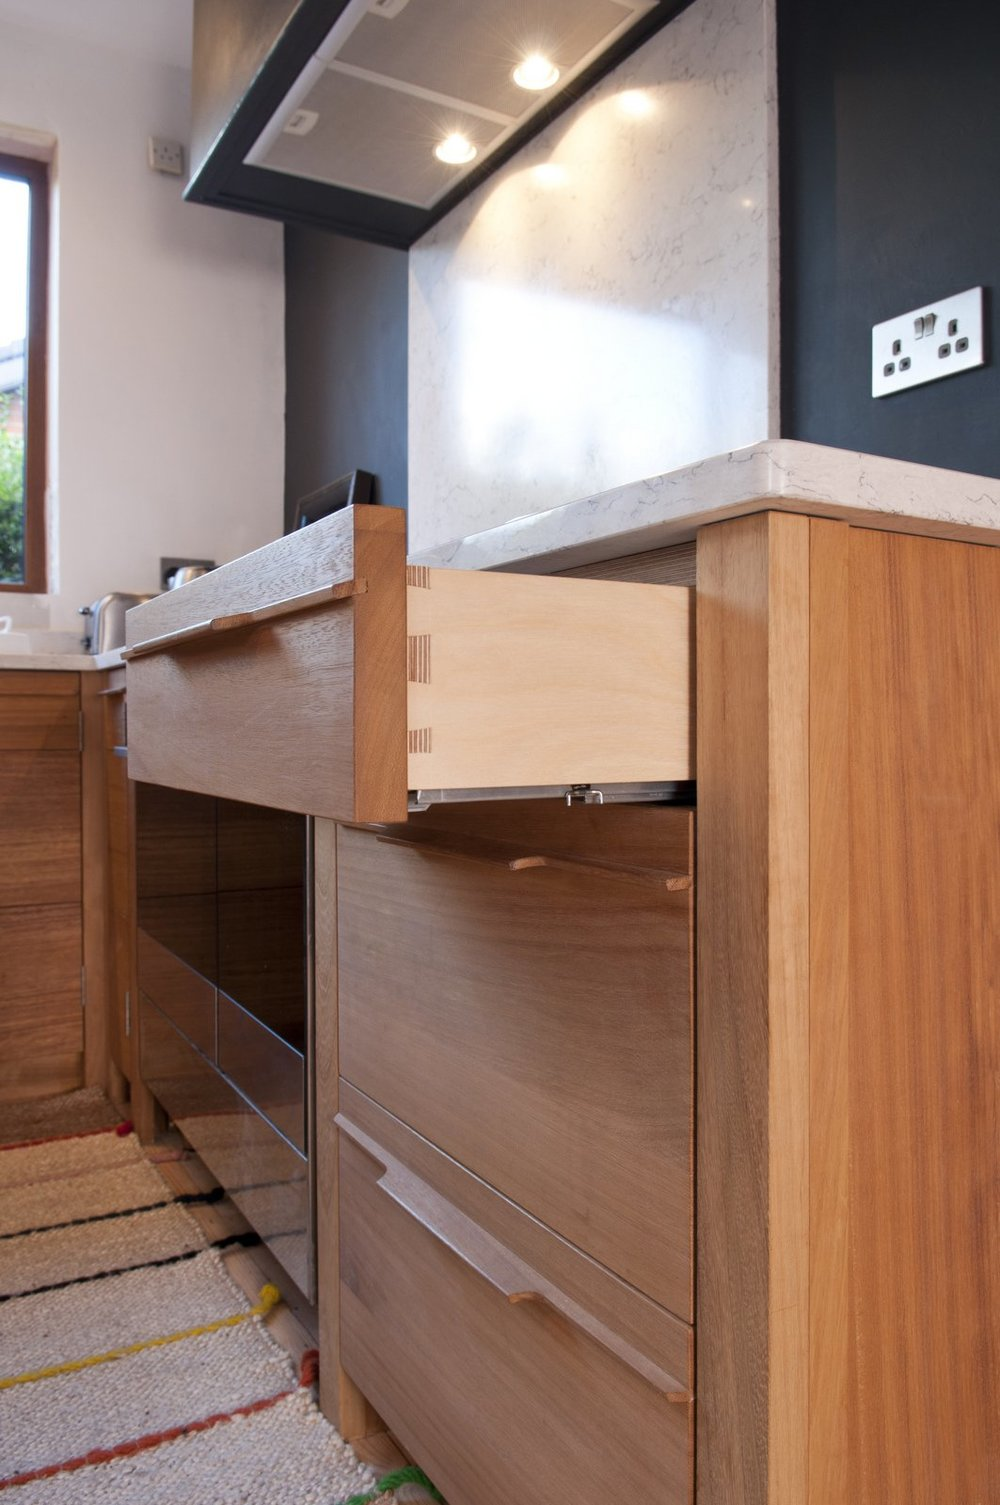 kitchen drawer and joint bespoke handcrafted kitchen ireland